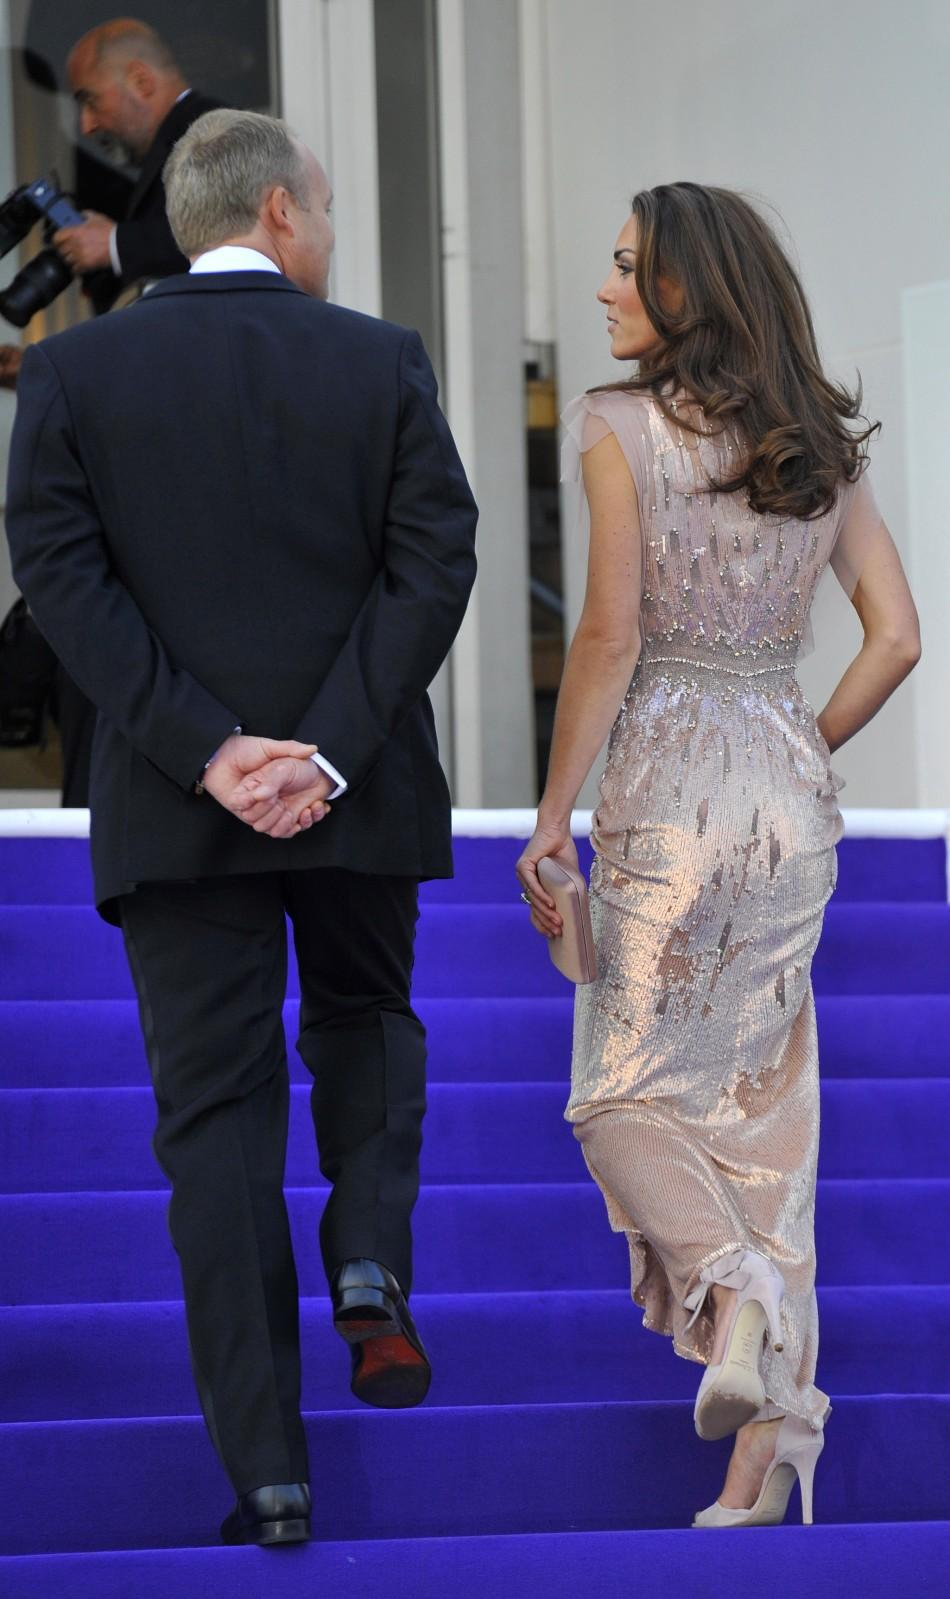 Britain's Catherine, Duchess of Cambridge walks up a staircase as she arrives with Prince William (not pictured) for a charity dinner at Kensington Palace in London June 9, 2011.